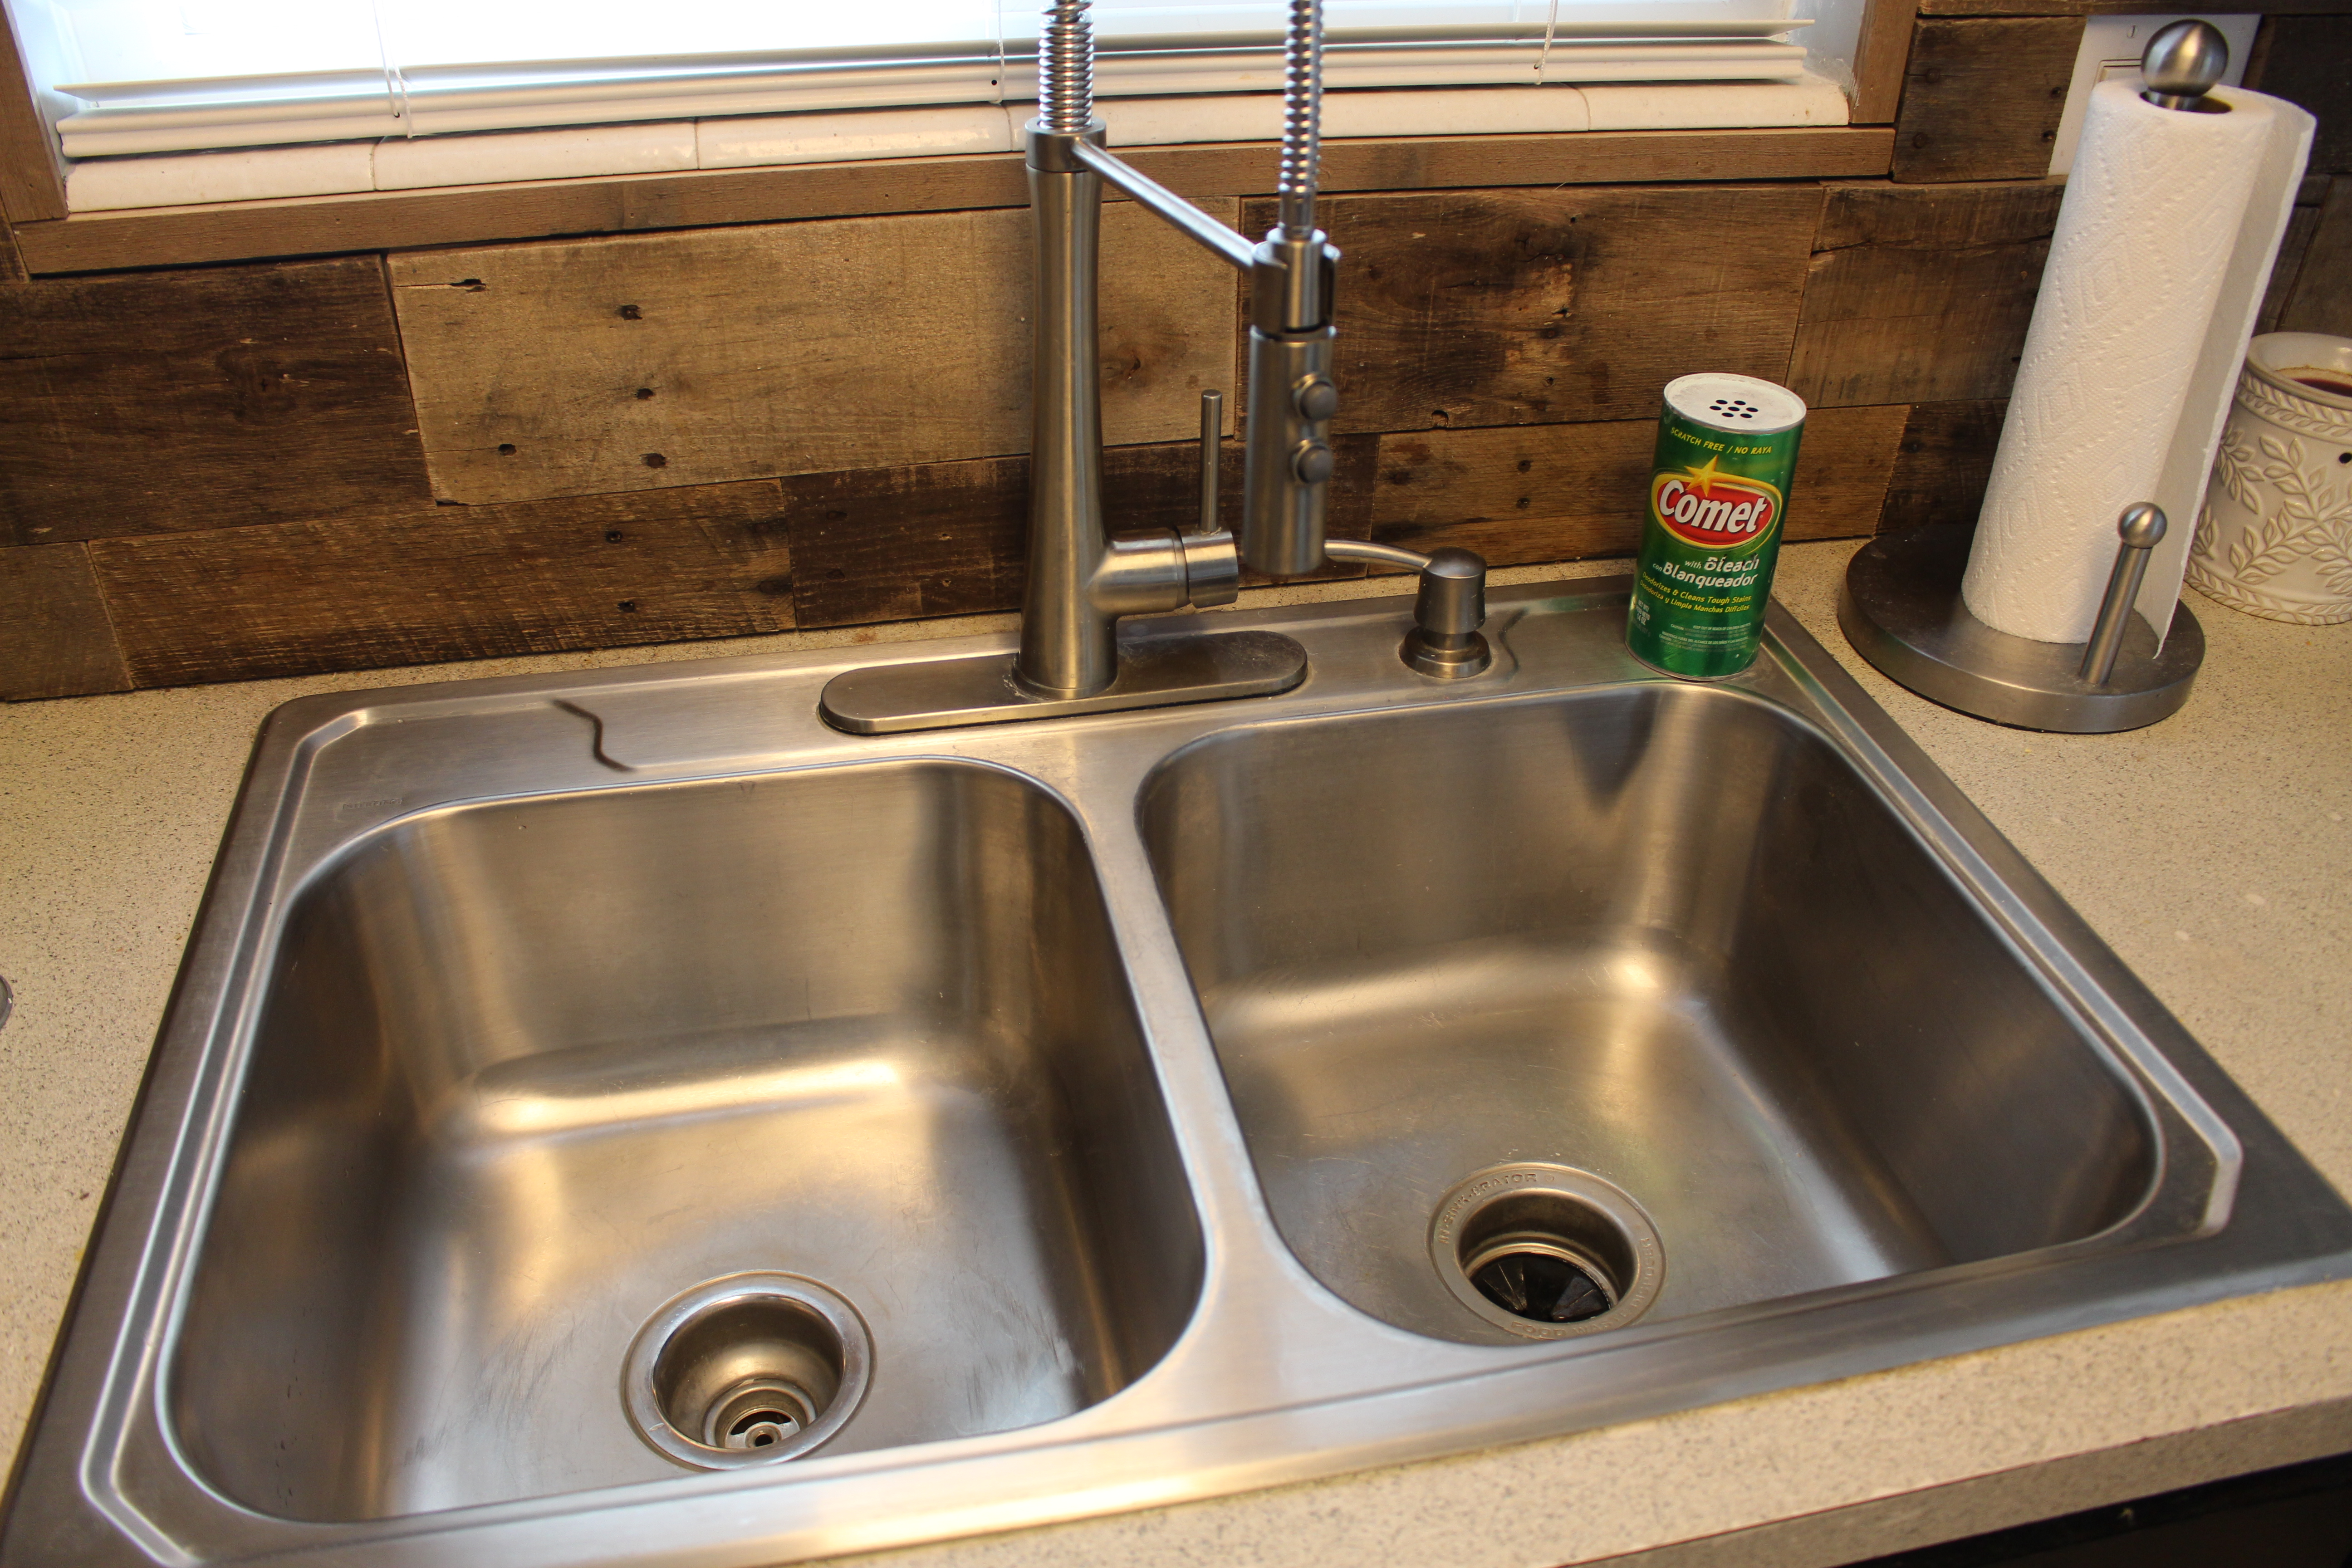 Go to Bed with a CLEAN kitchen sink! | Simply House to Home